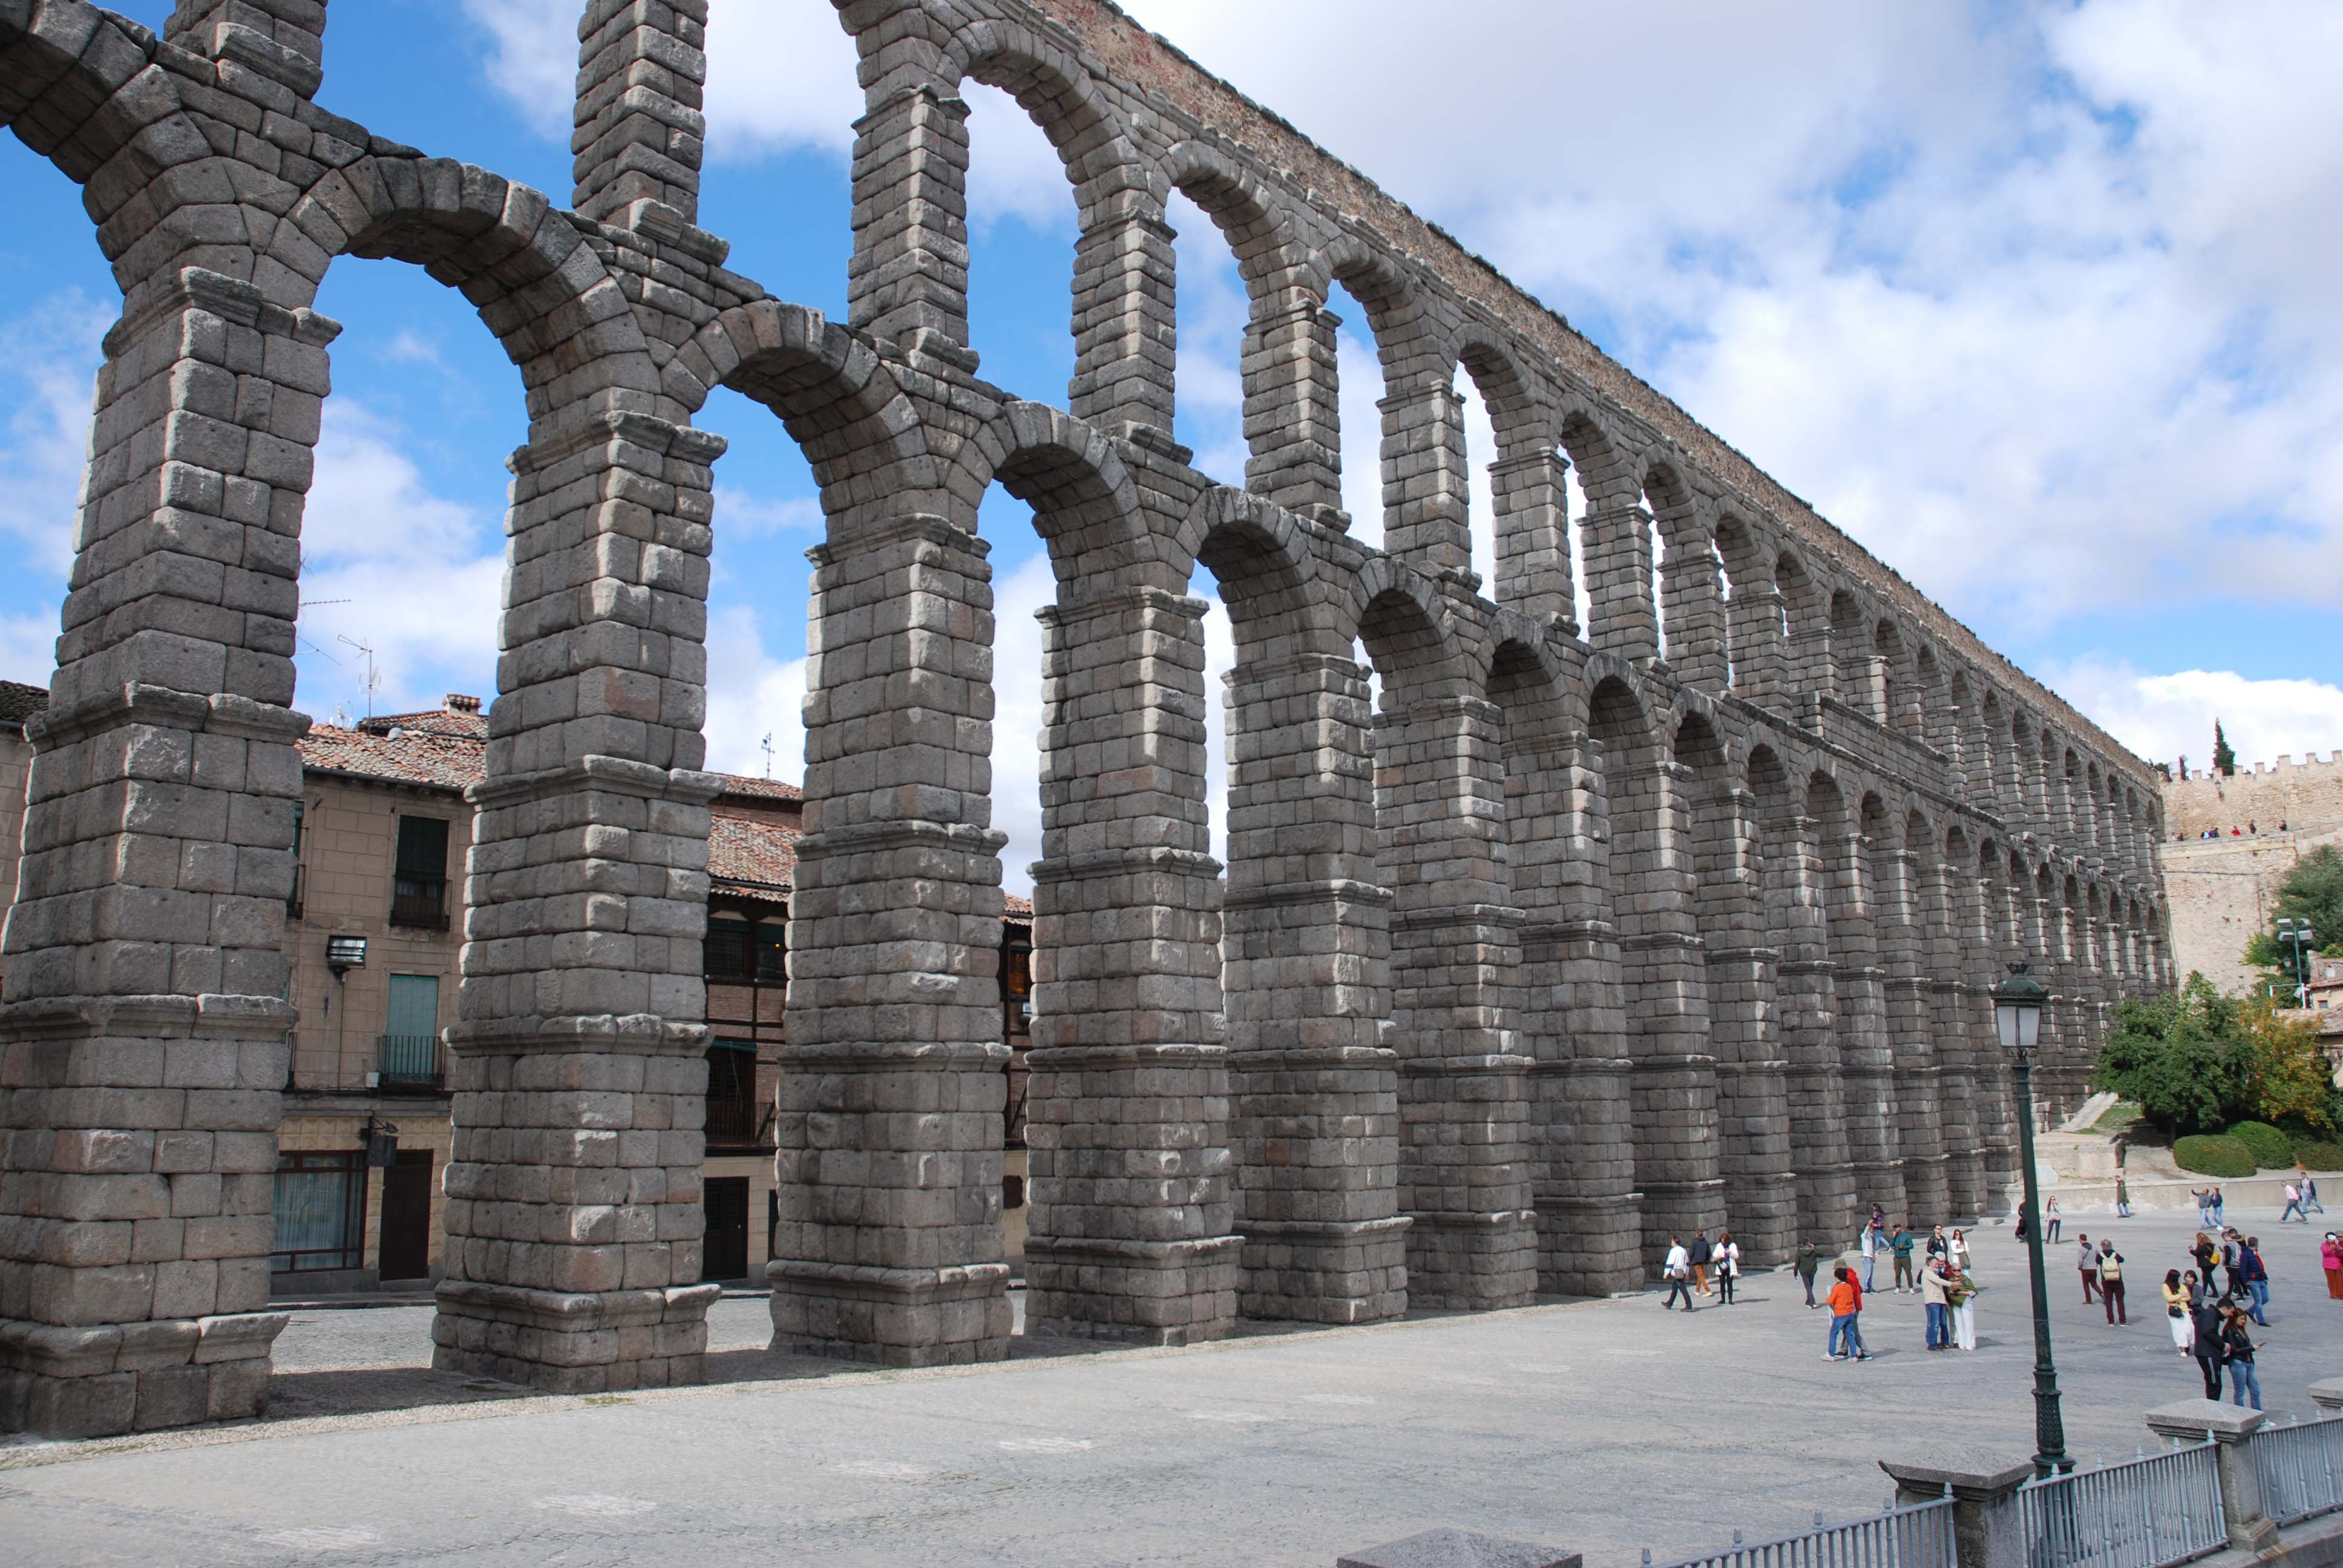 Cycle through the impressive Roman aqueduct at Segovia